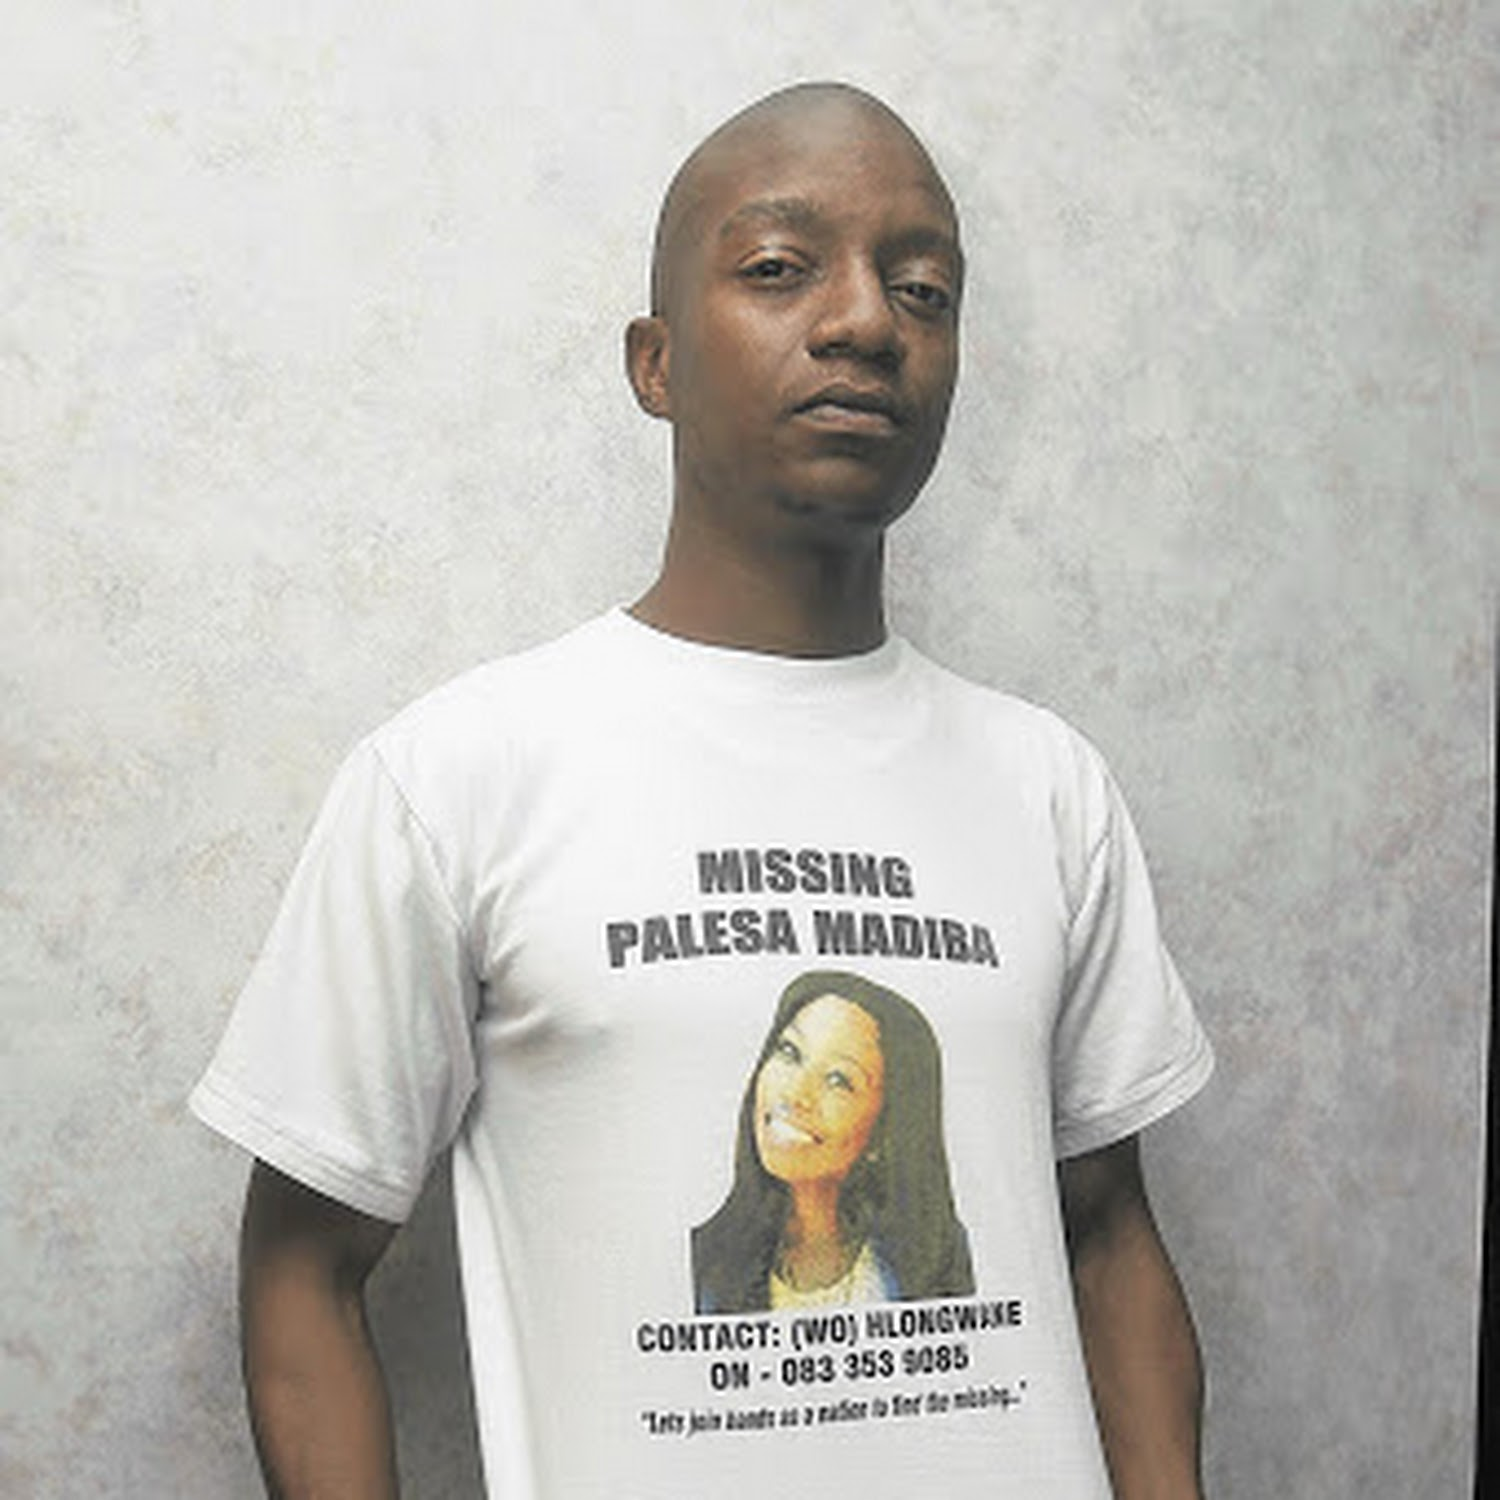 Search For Missing Student Palesa Grows